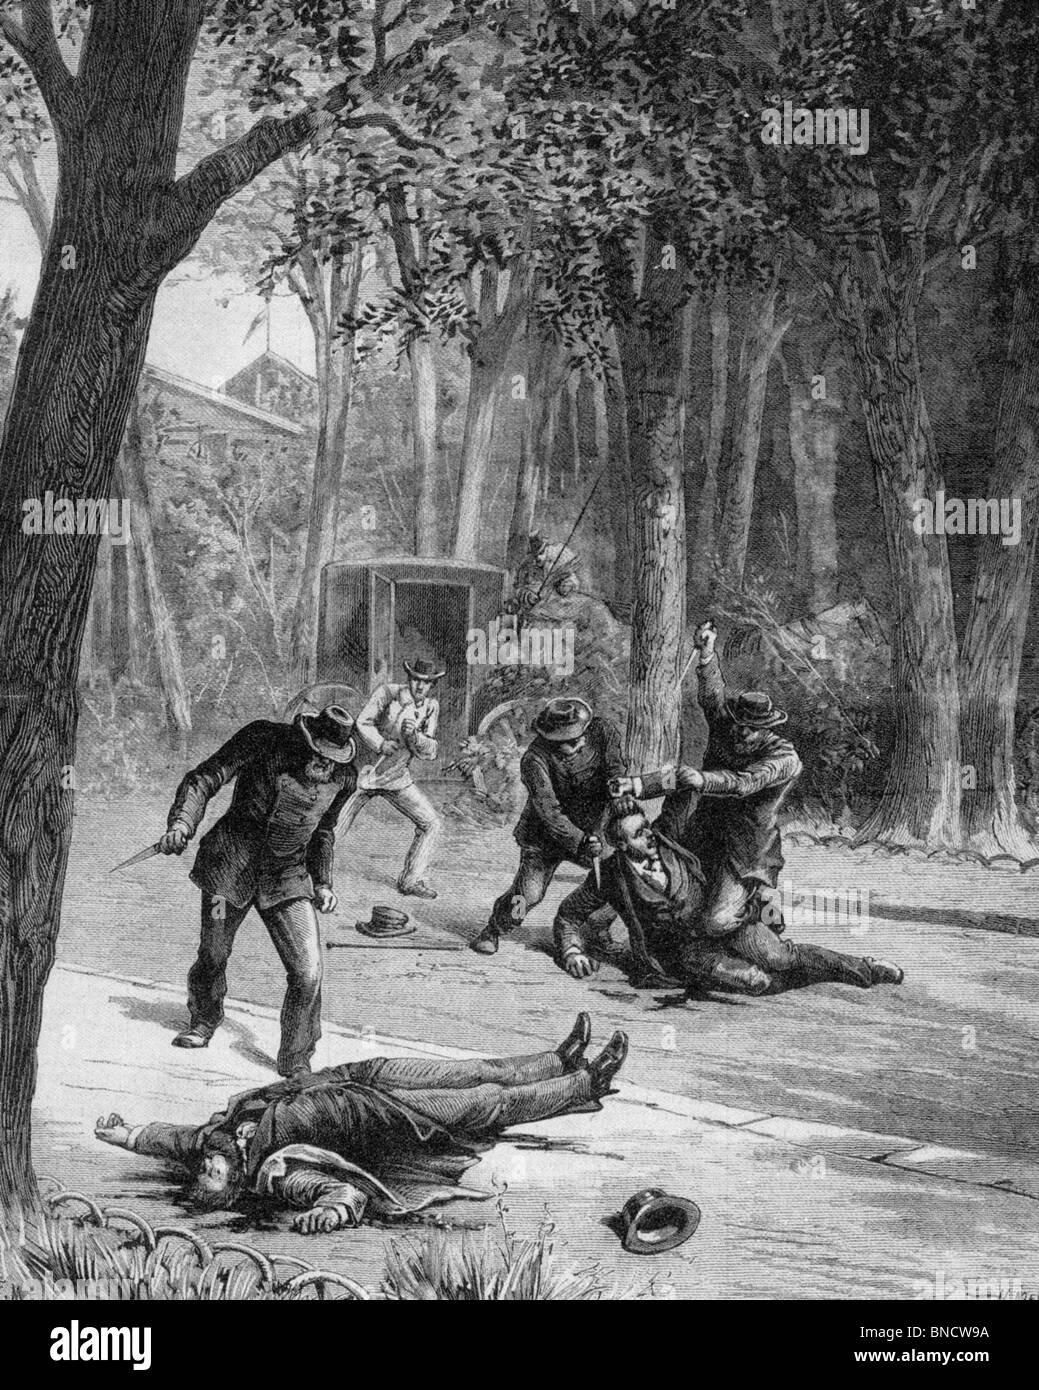 THE PHOENIX PARK MURDERS OF LORD FREDERICK CAVENDISH and Thomas Burke 6 May 1882 - see Description below Stock Photo